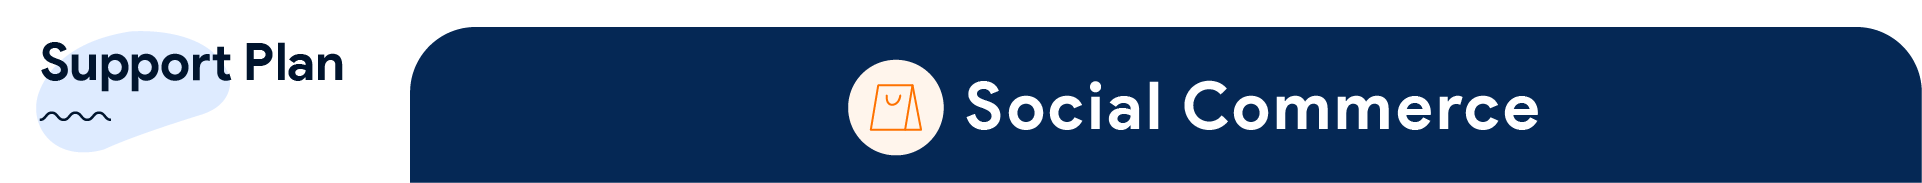 2.SHOPLINE_Support_Social-Commerce.png